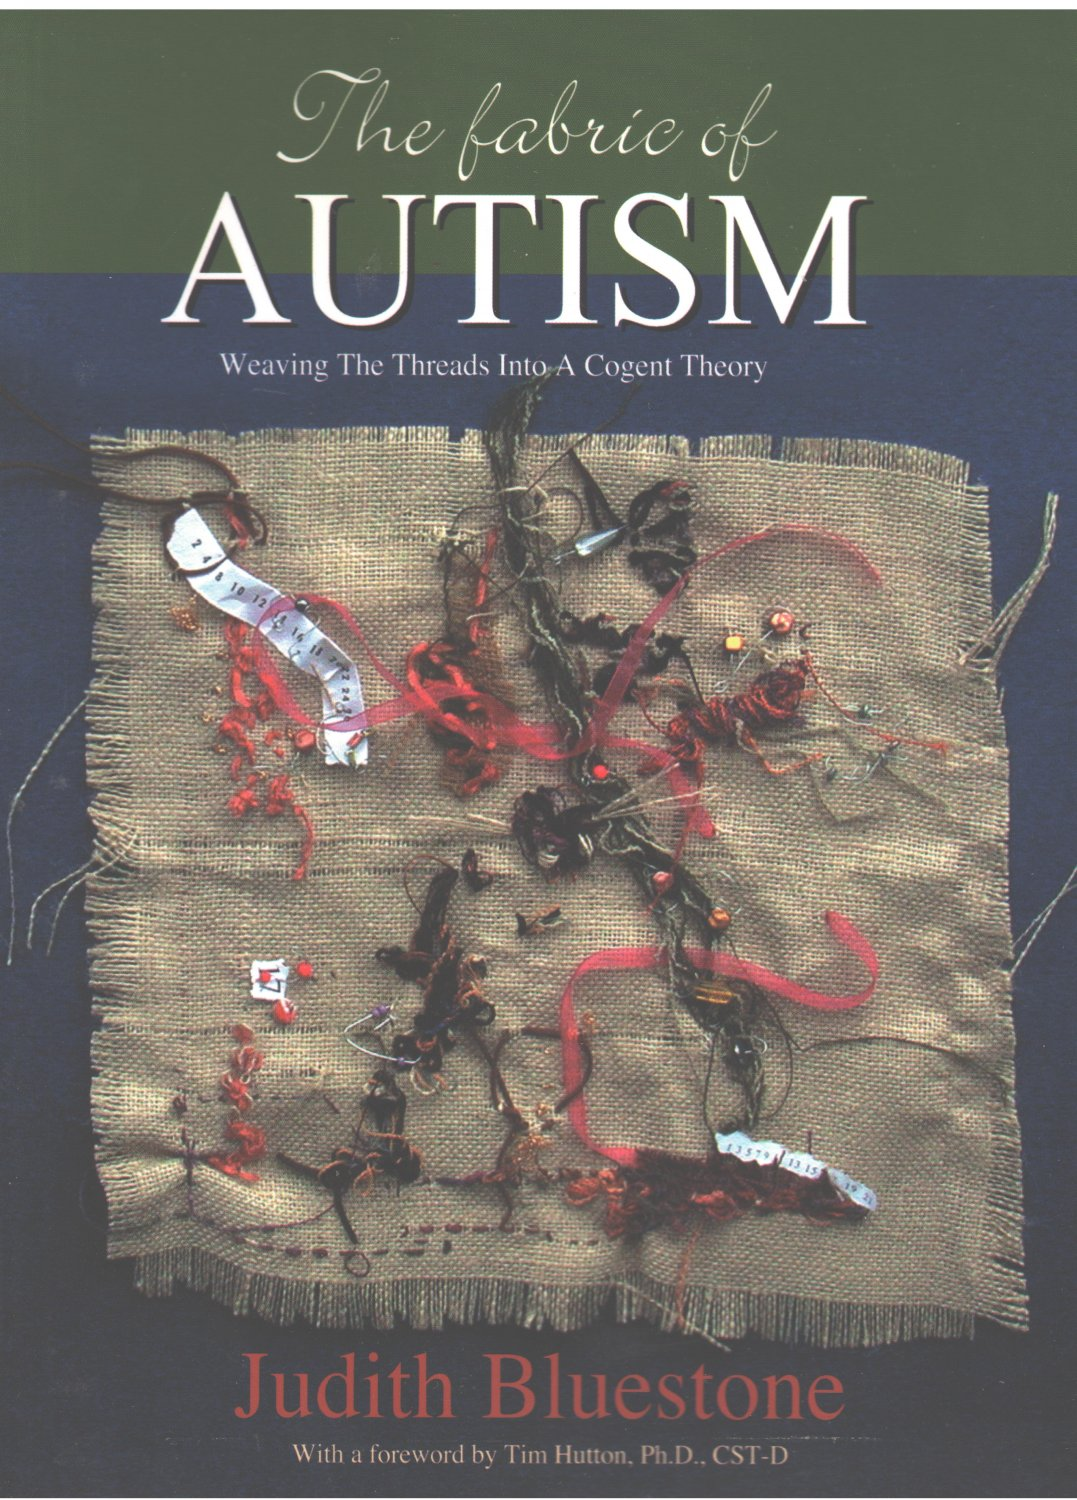 The Fabric of Autism paperback by Judith Bluestone